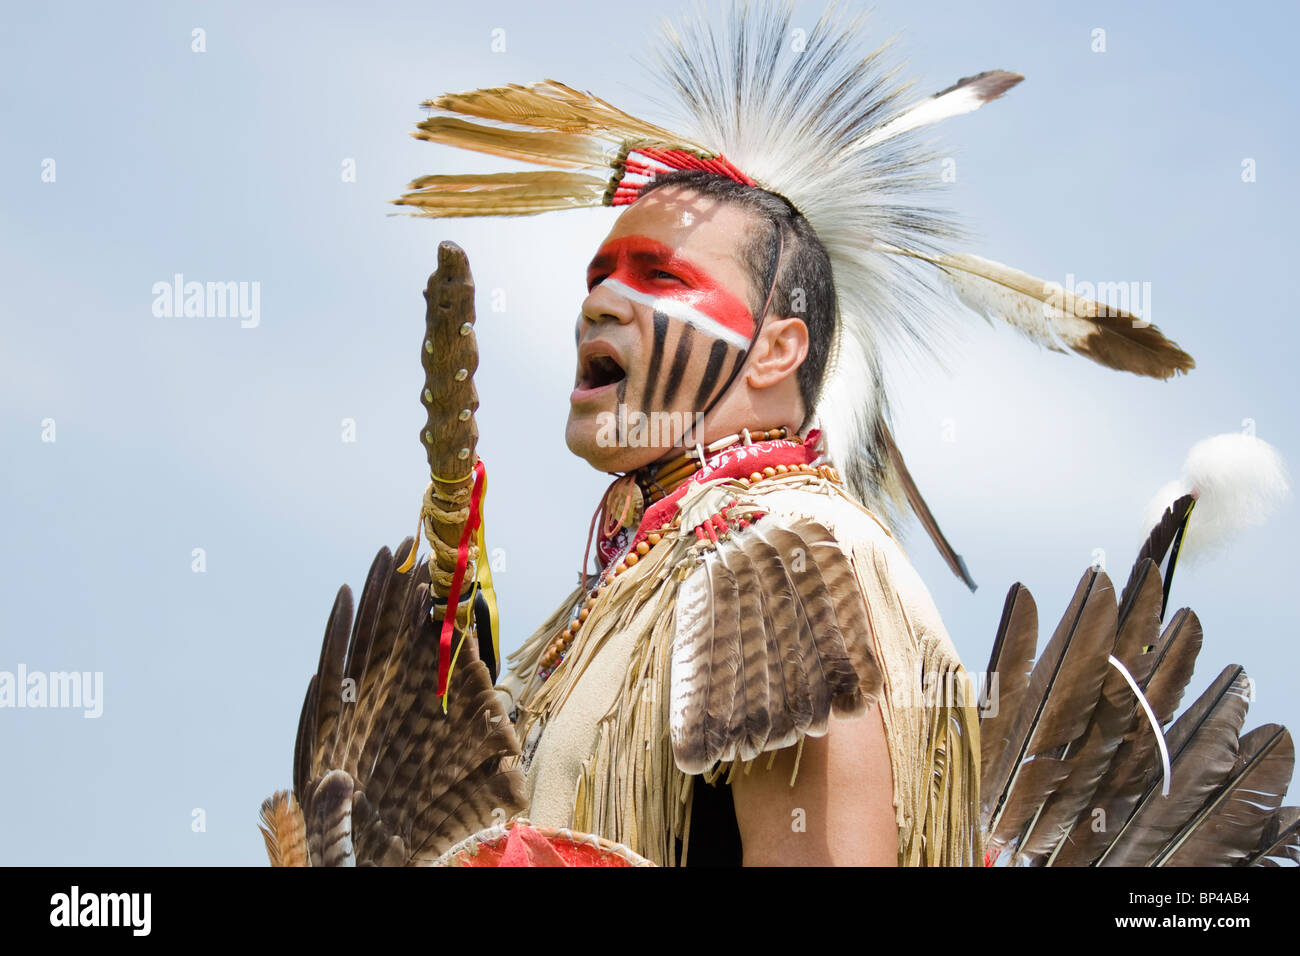 Native American in traditional regalia at the 8th Annual Red Wing PowWow in Virginia Beach, Virginia - Stock Image